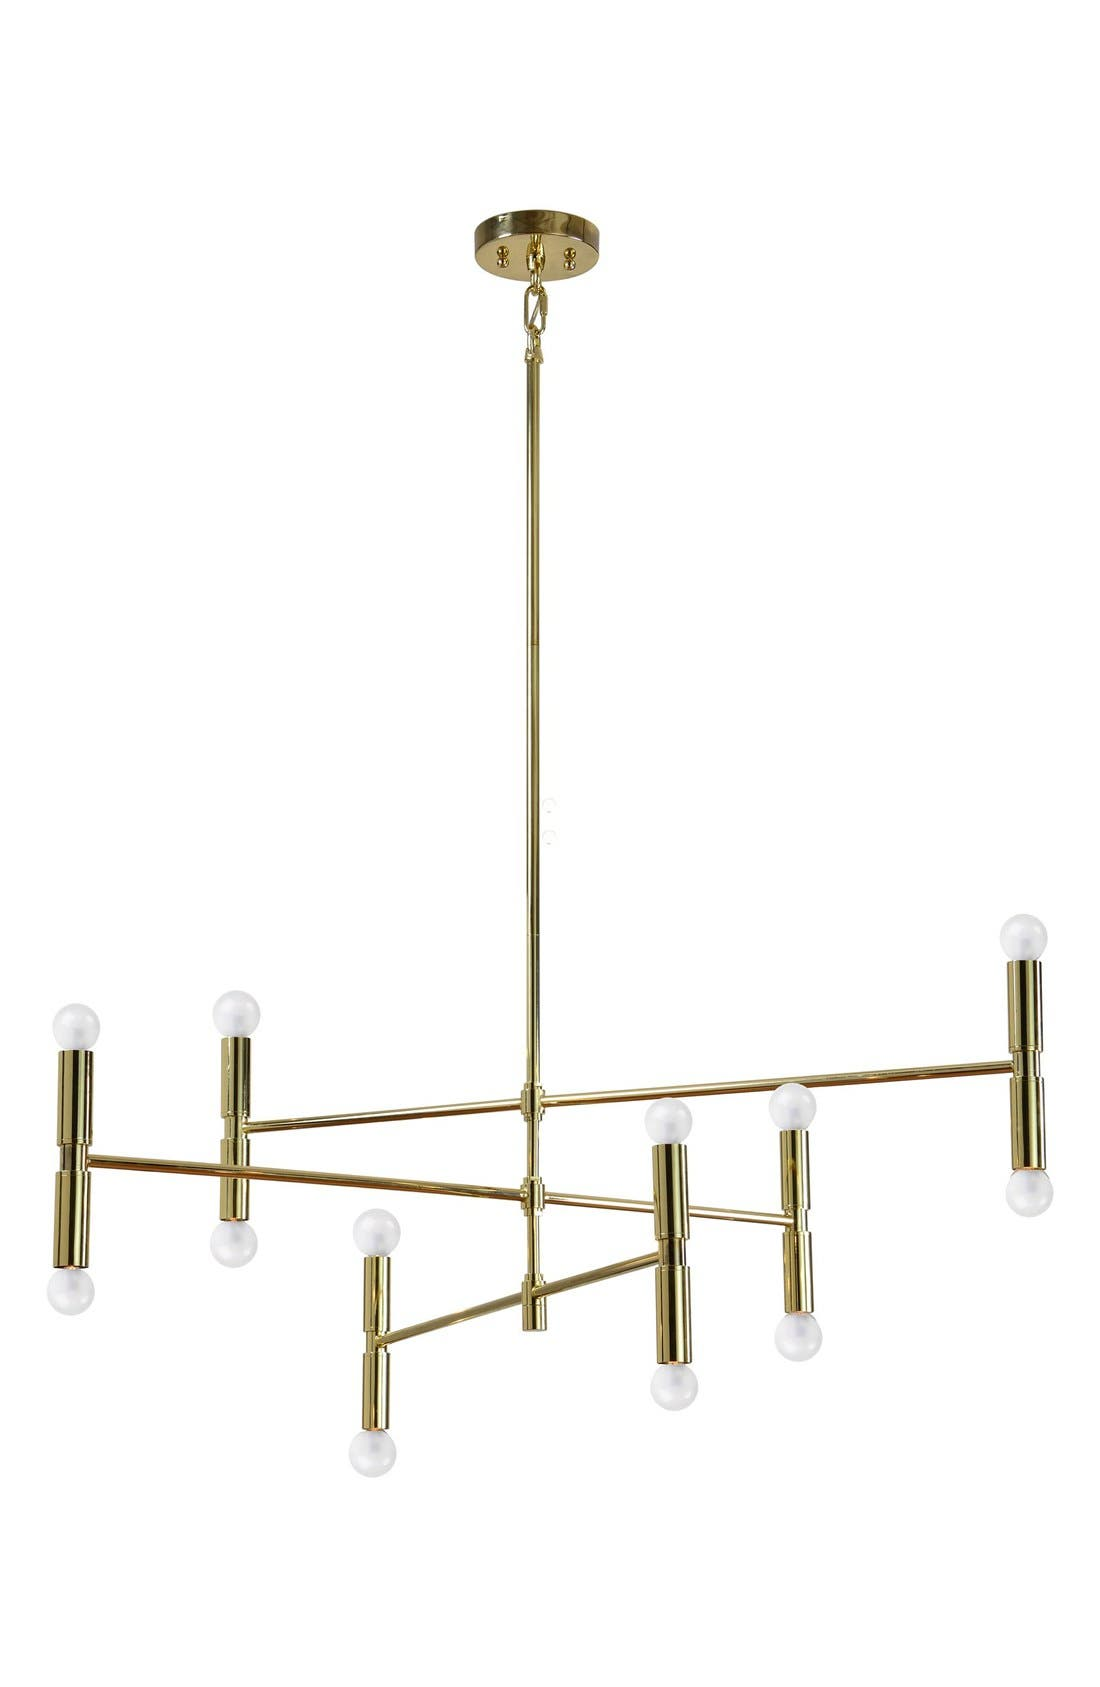 'Axis' Ceiling Light Fixture,                         Main,                         color, Gold